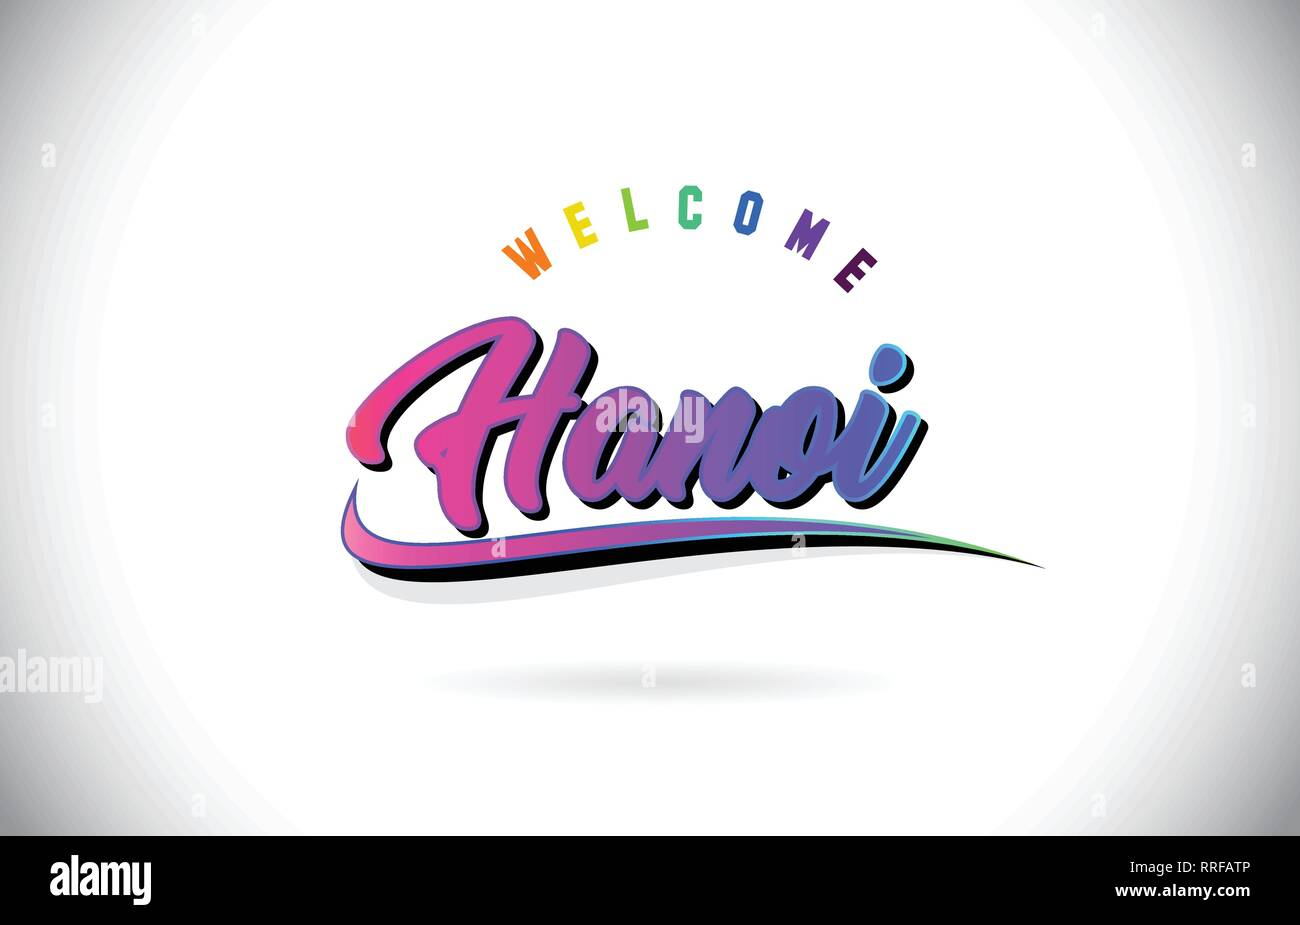 Hanoi Welcome To Word Text with Creative Purple Pink Handwritten Font and Swoosh Shape Design Vector Illustration. - Stock Vector